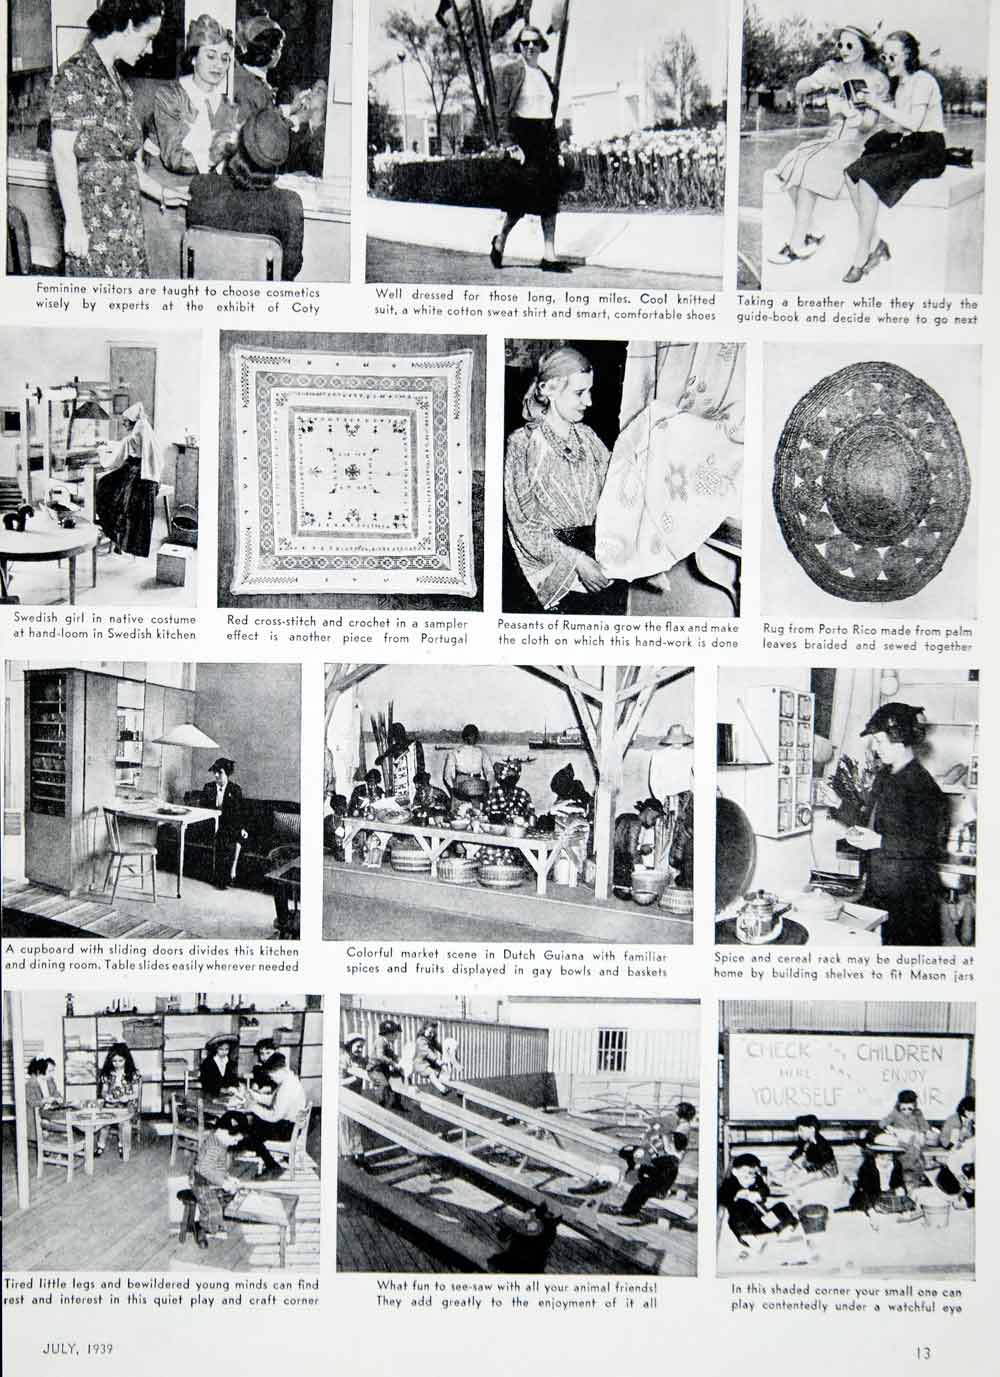 1939 Article New York World's Fair Exhibits Food Fashion Reviews Historical  YWD3